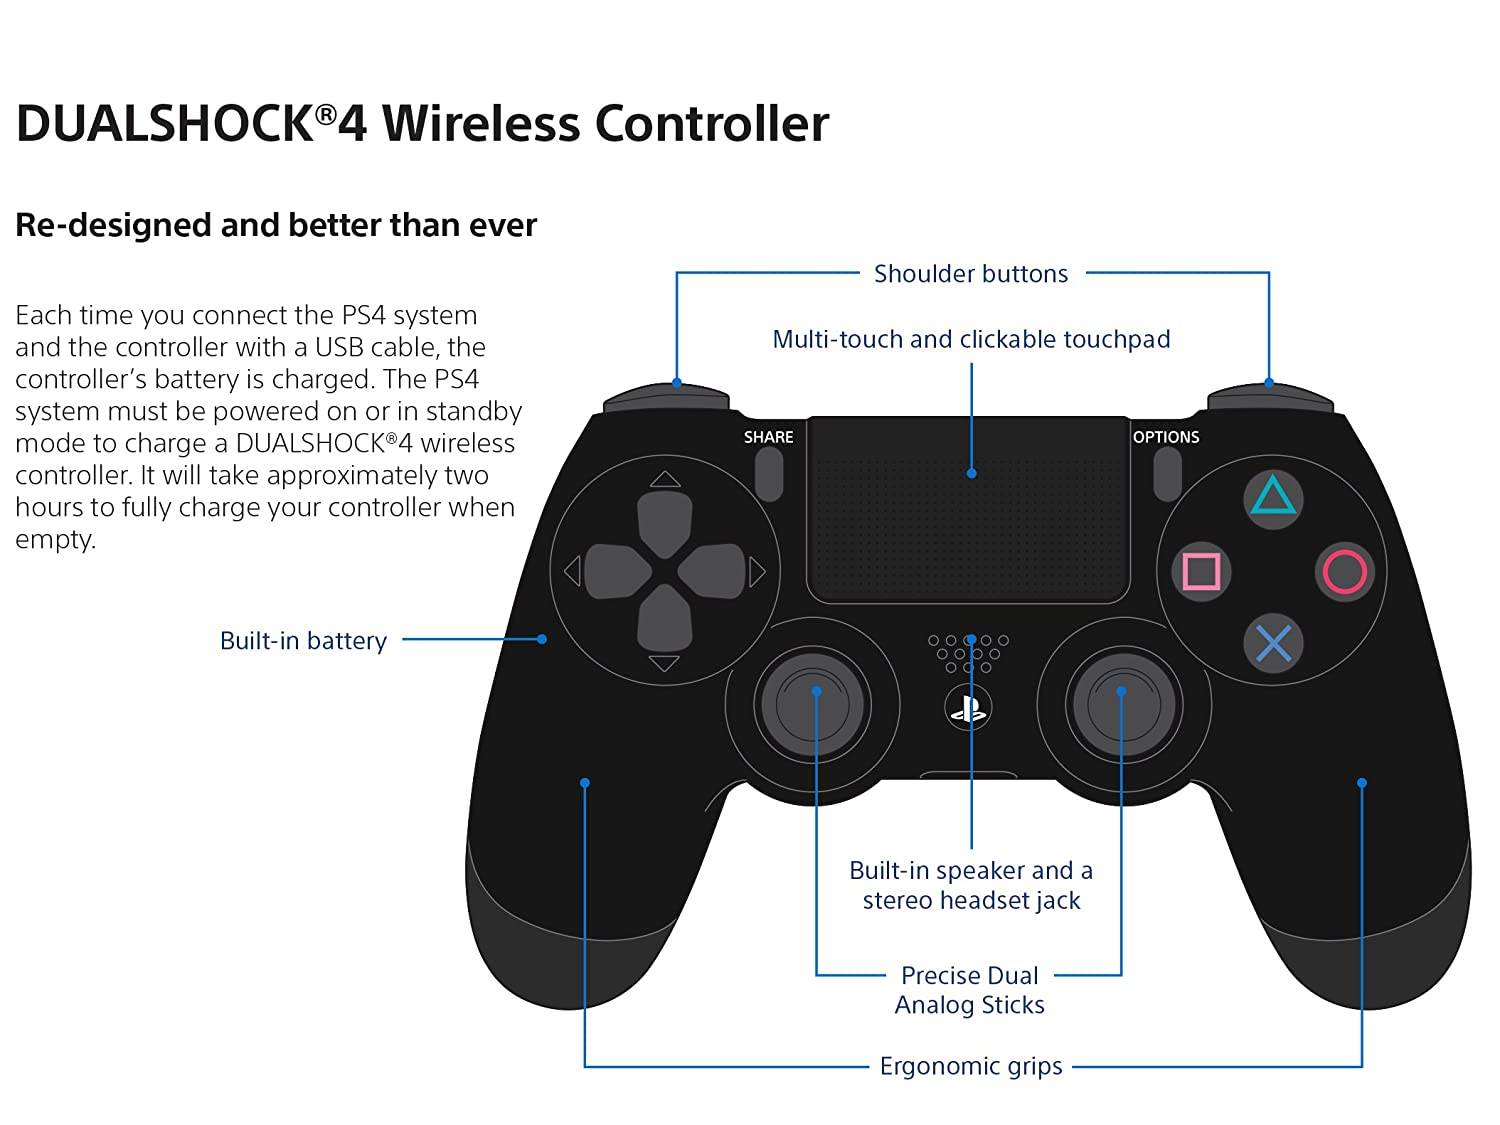 playstation 3 controller diagram with Dualshock 4 Wireless Controller For Playstation 4 Glacier White 6040955 on Micro Usb Cable For Syncing And Charging Your Nokia Lumia 620 Smart Phone in addition Playstation retropie mod also Ifixit Ps3 Slim Teardown likewise 19718 moreover 156467 Xbox One Hardware And Software Specs Detailed And Analyzed.